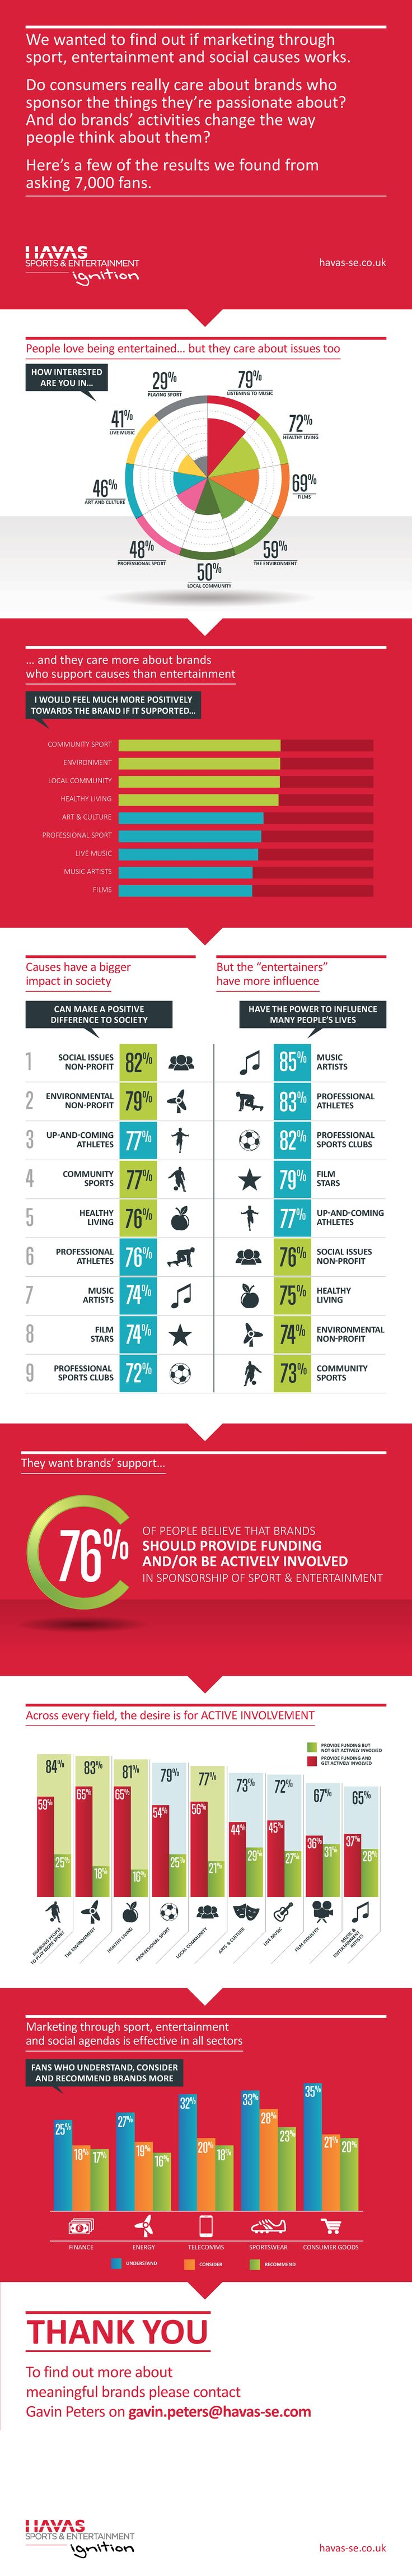 Study by Havas Sports & Entertainment-ignition UK demonstrates that social causes must be at the heart of brand sponsorships in sport and entertainment #meaningfulbrands #meaningfulsponsorship